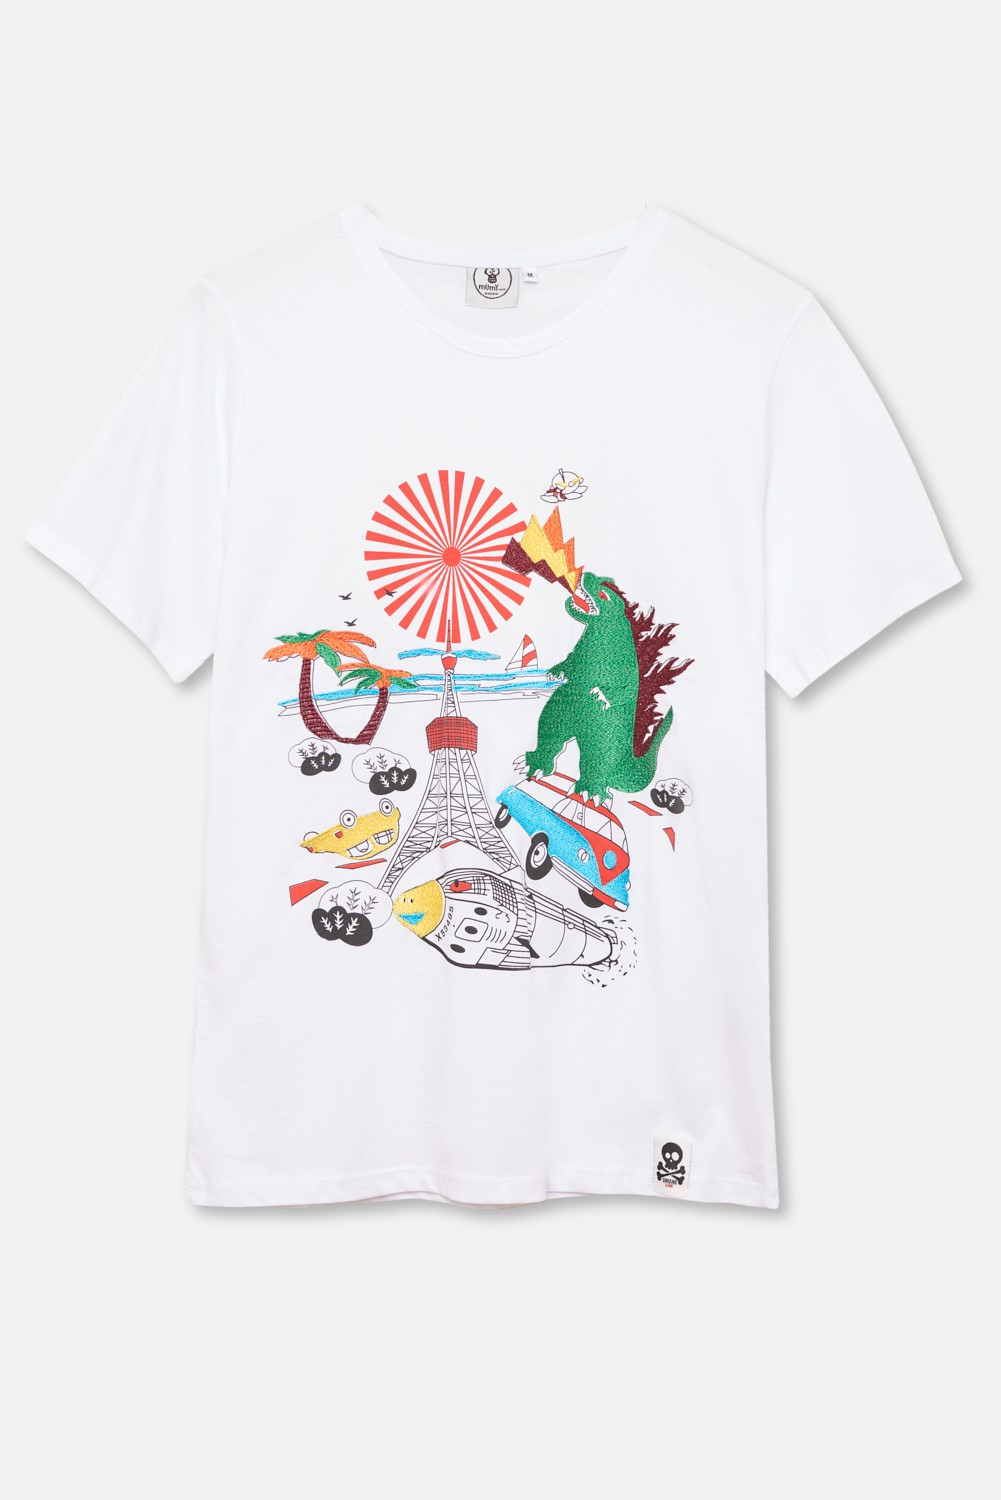 ADULT´S EMBROIDERED T-SHIRT UMAMI GODZILLA FUEGO